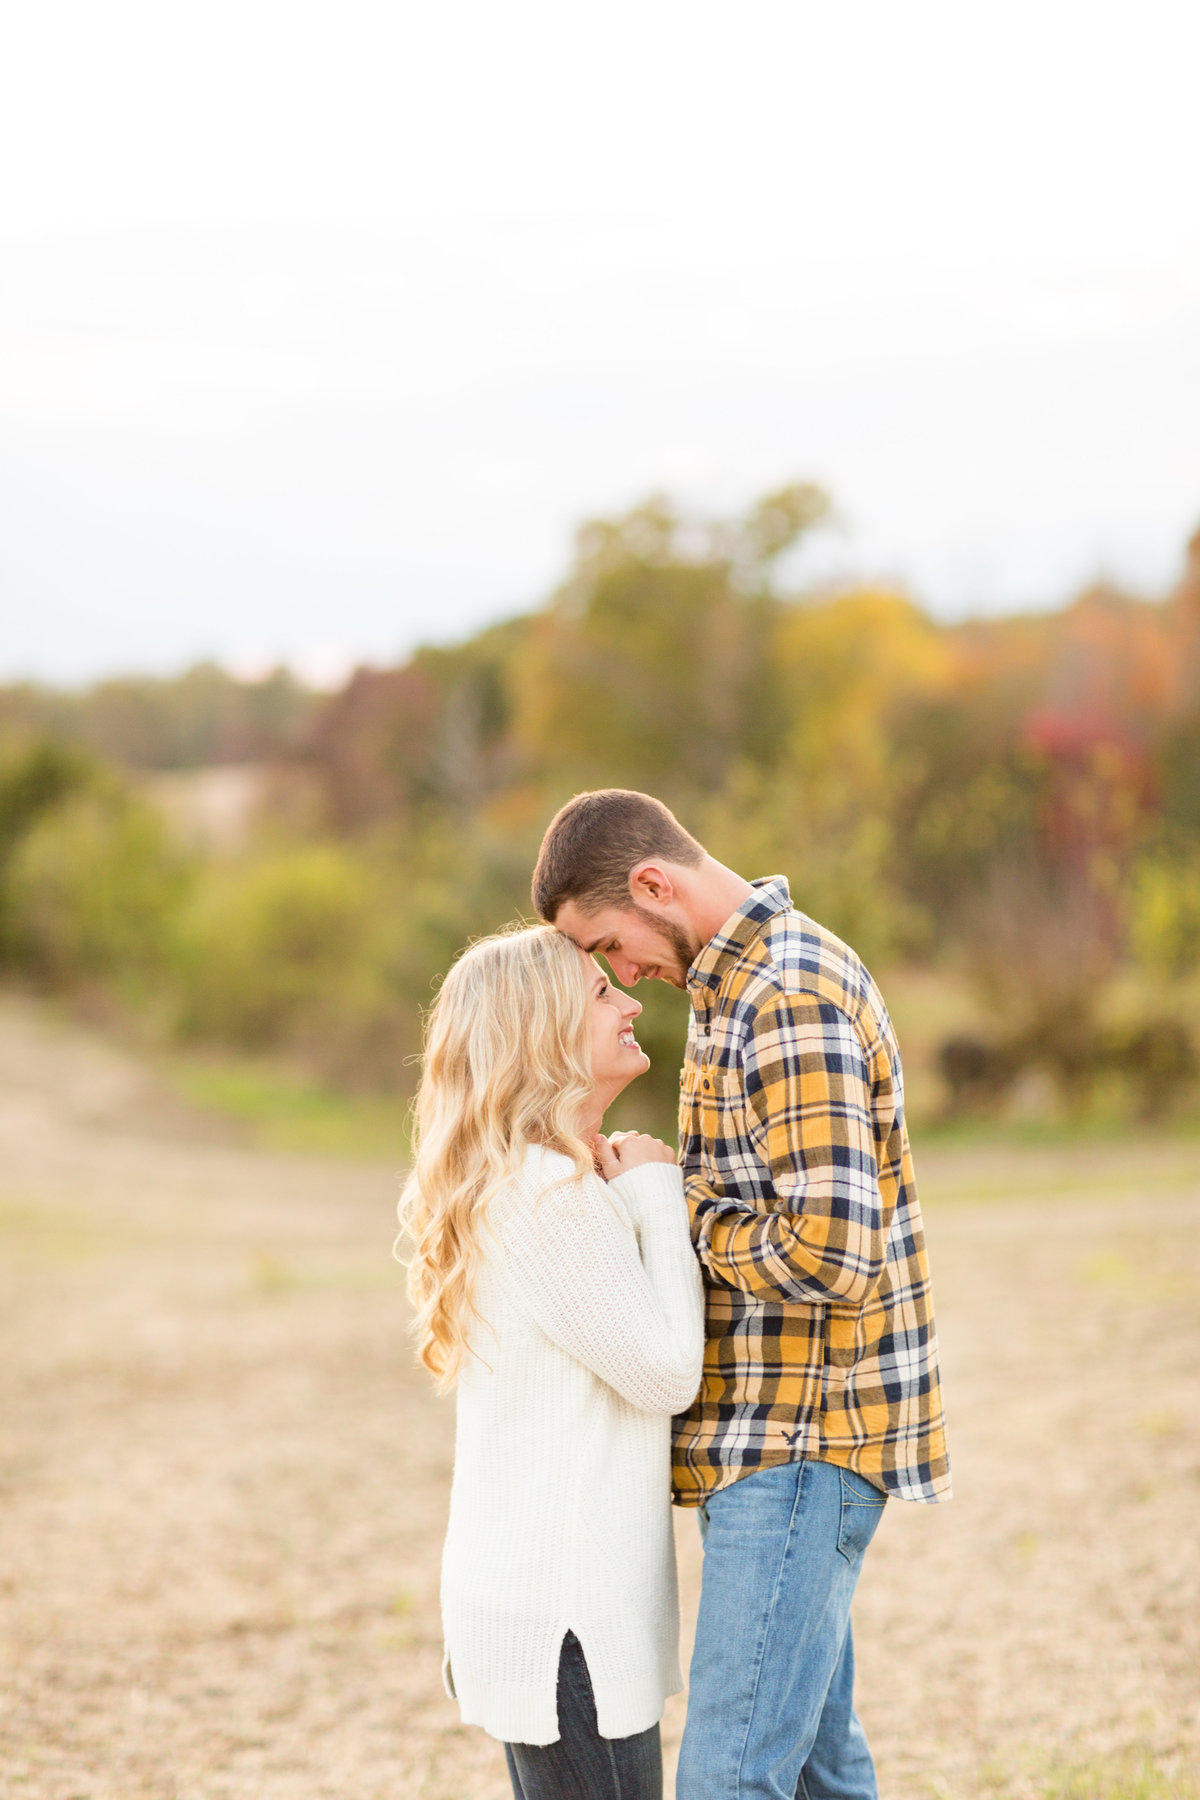 Stafford, Virginia engagement photography by Marie Hamilton Photography